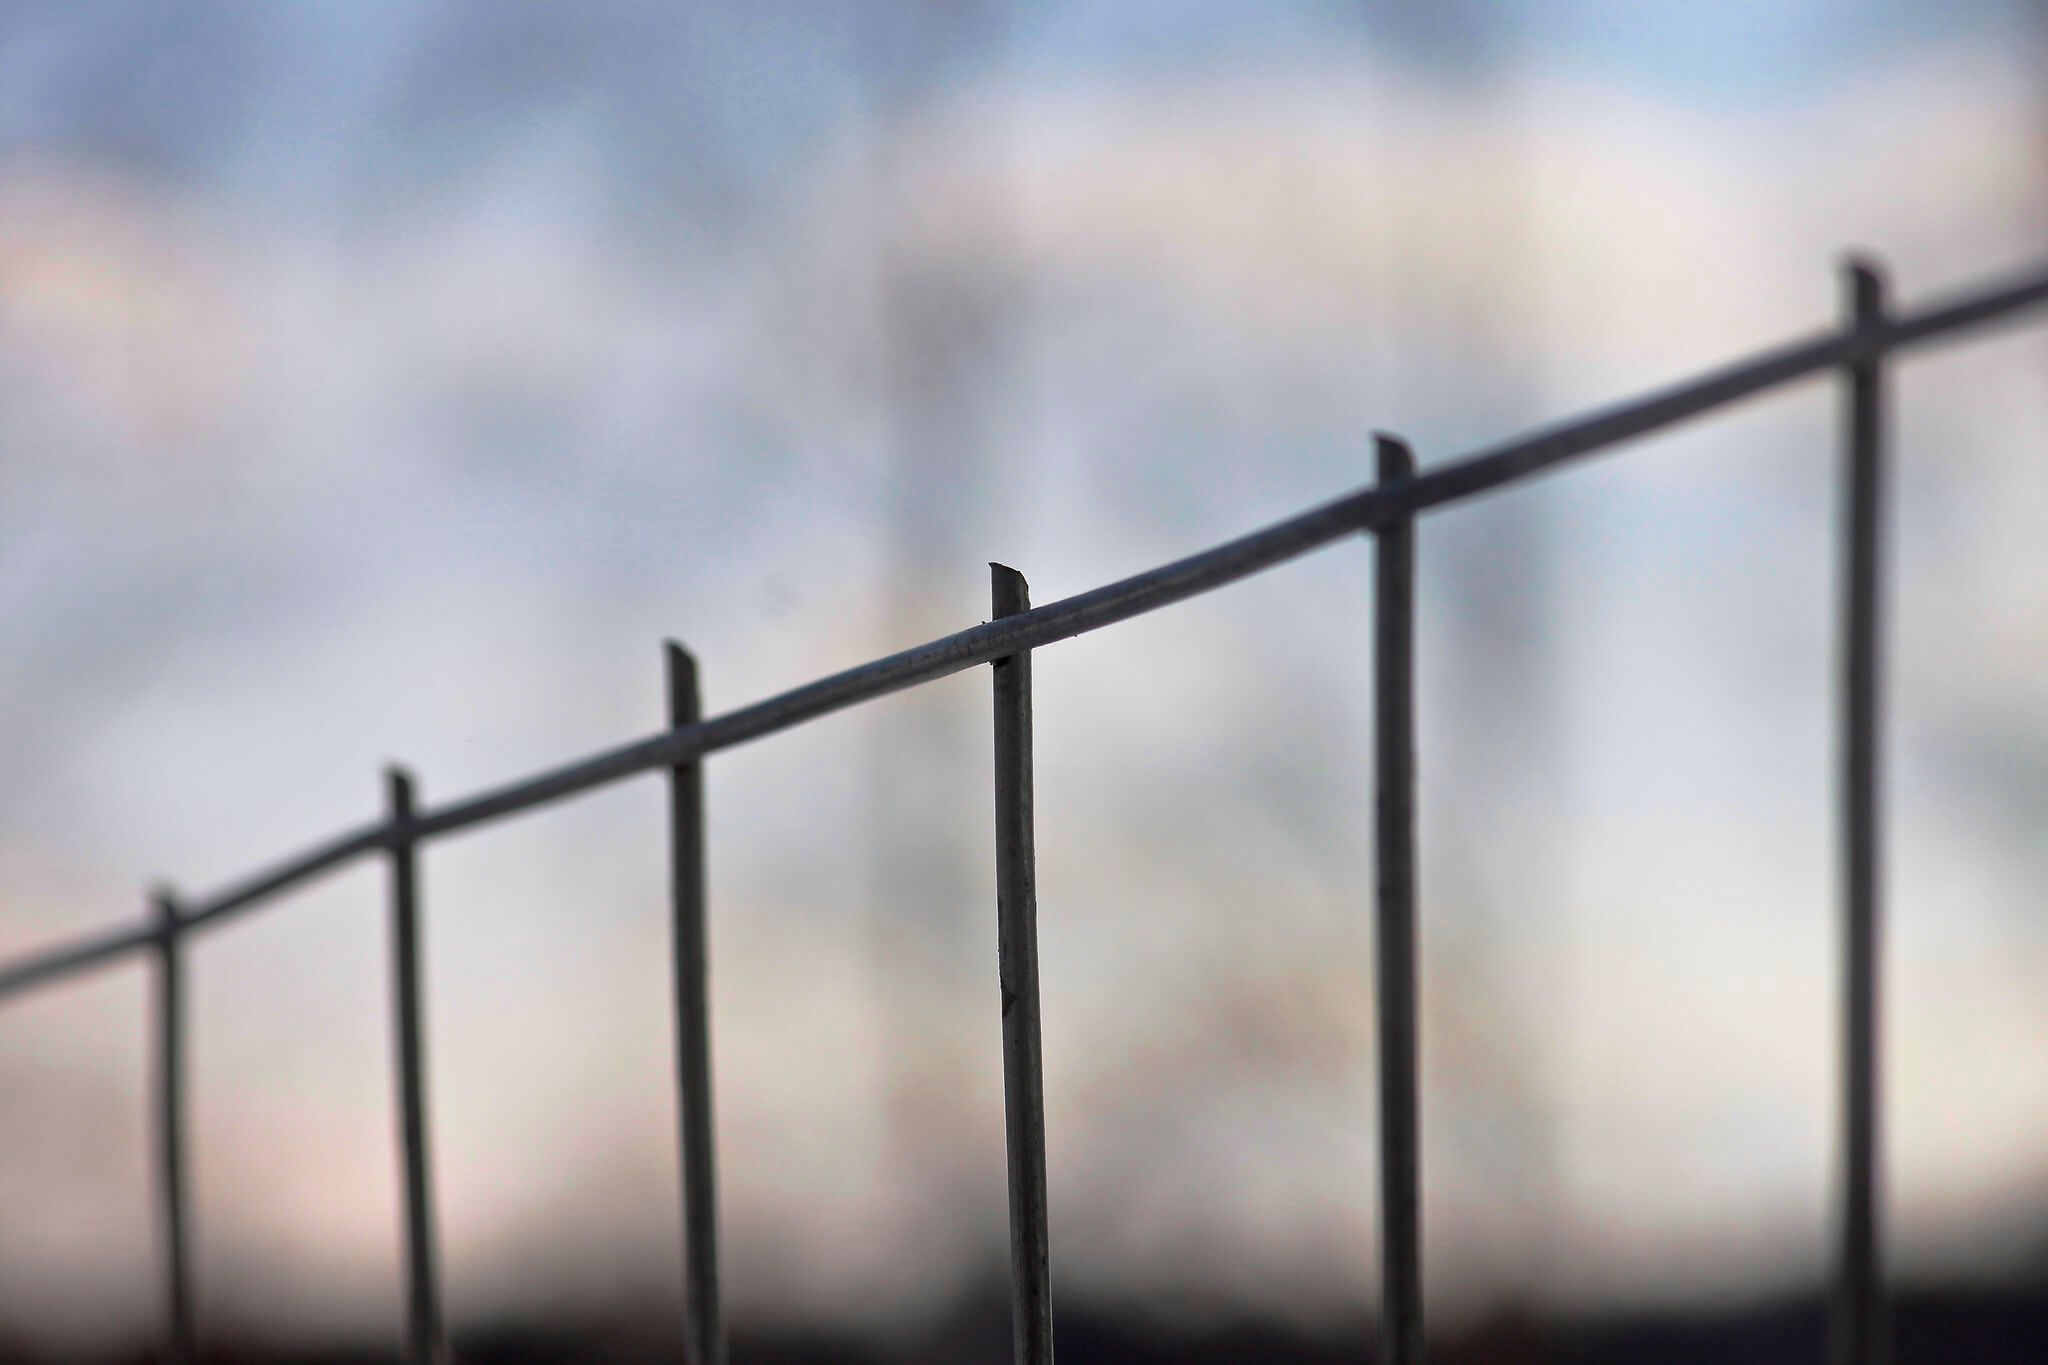 Photo of a prison fence against the clouds